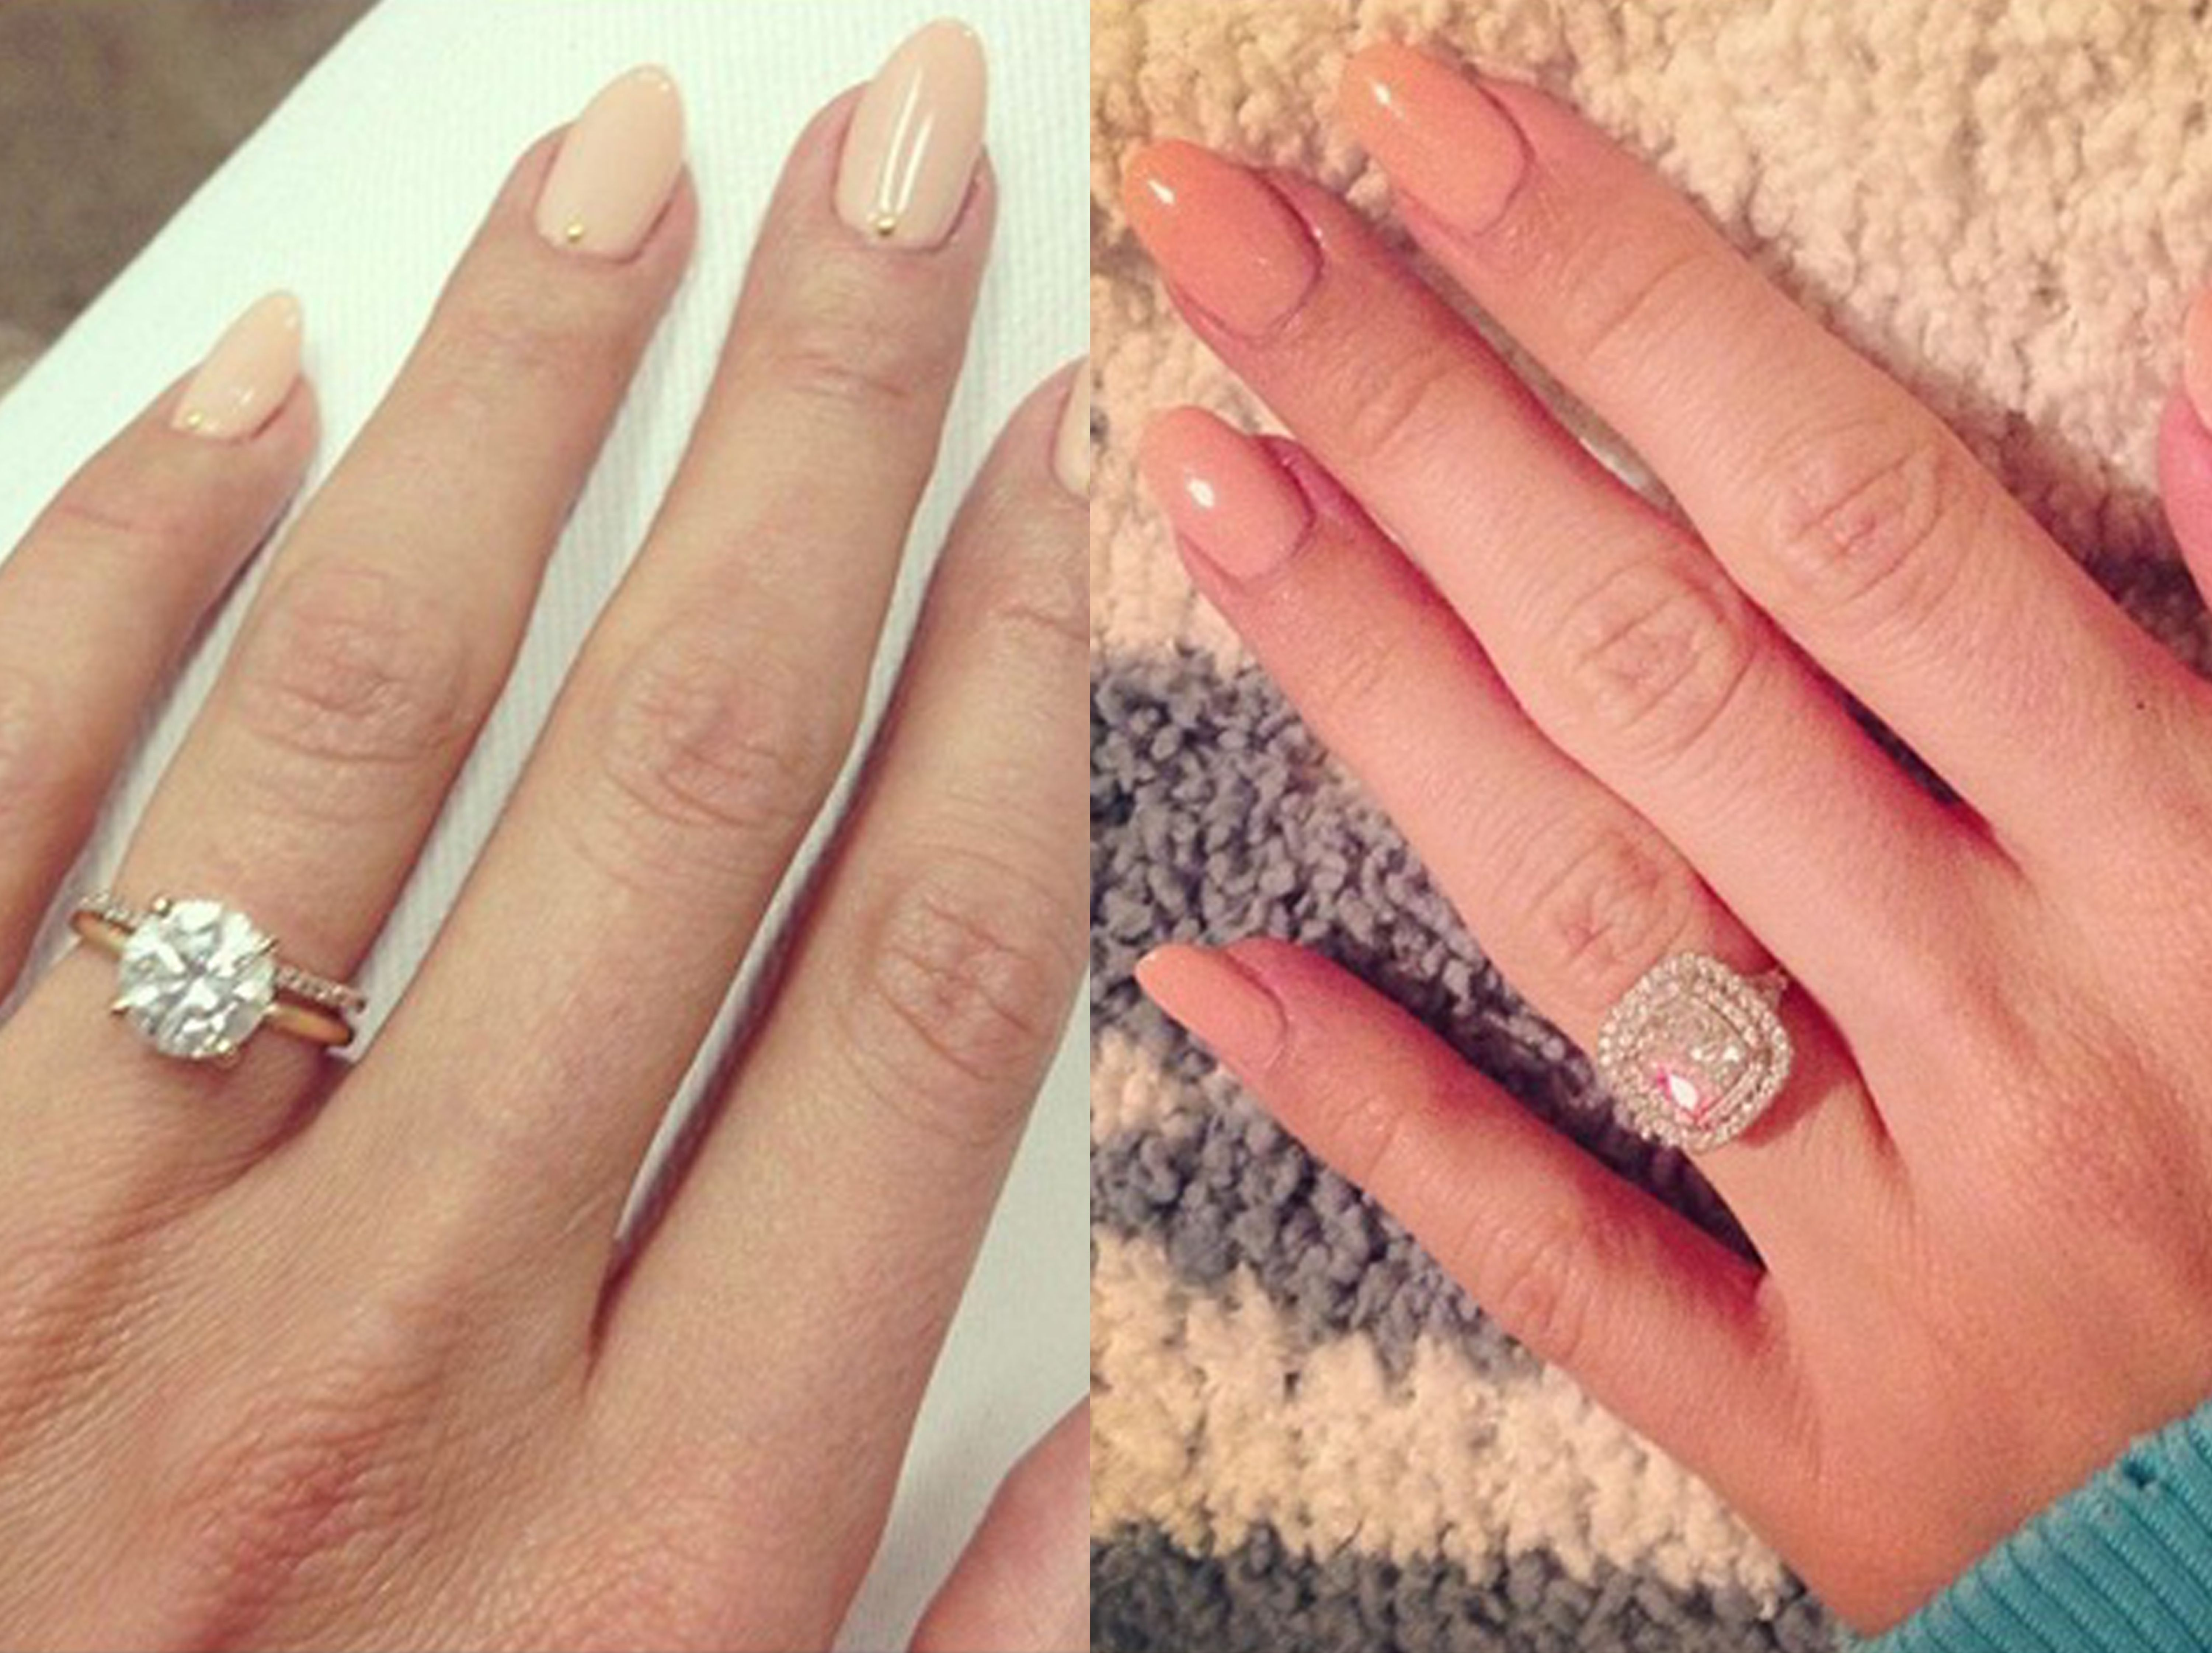 lauren conrad on left and another very lucky lady on the right - Lauren Conrad Wedding Ring